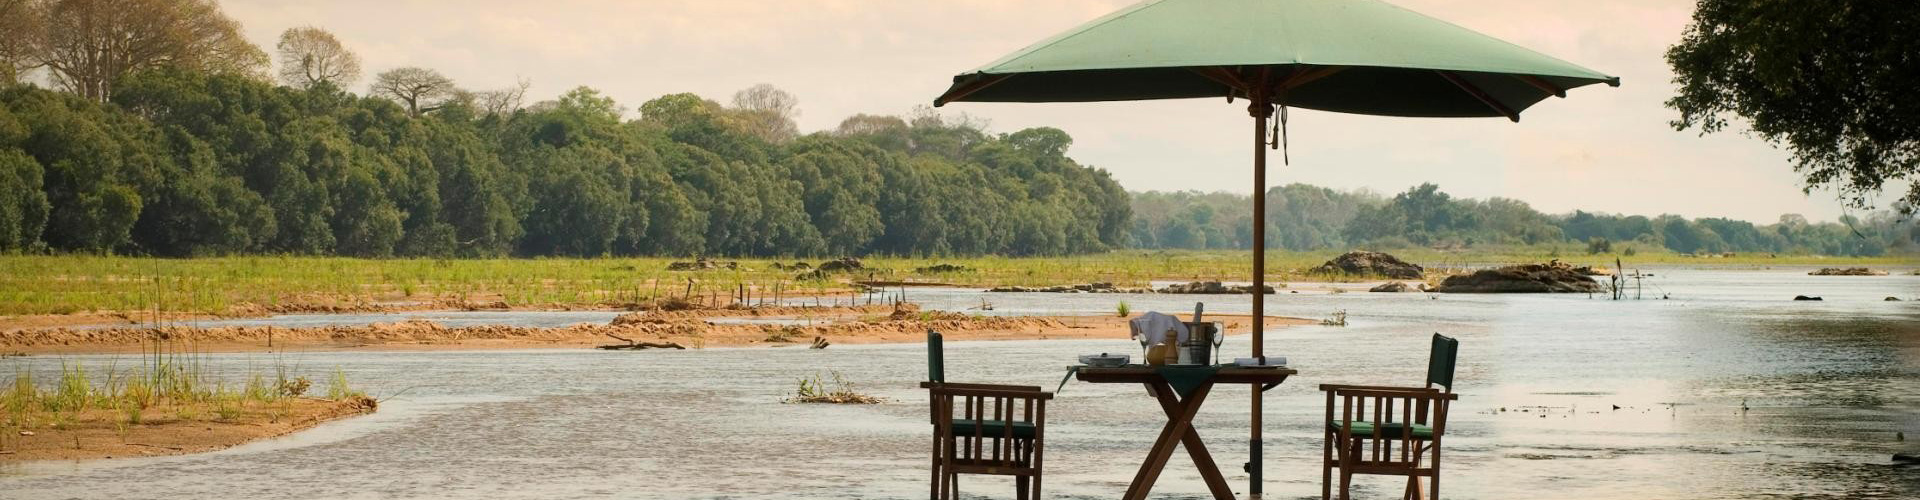 Breakfast in the Lugenda River